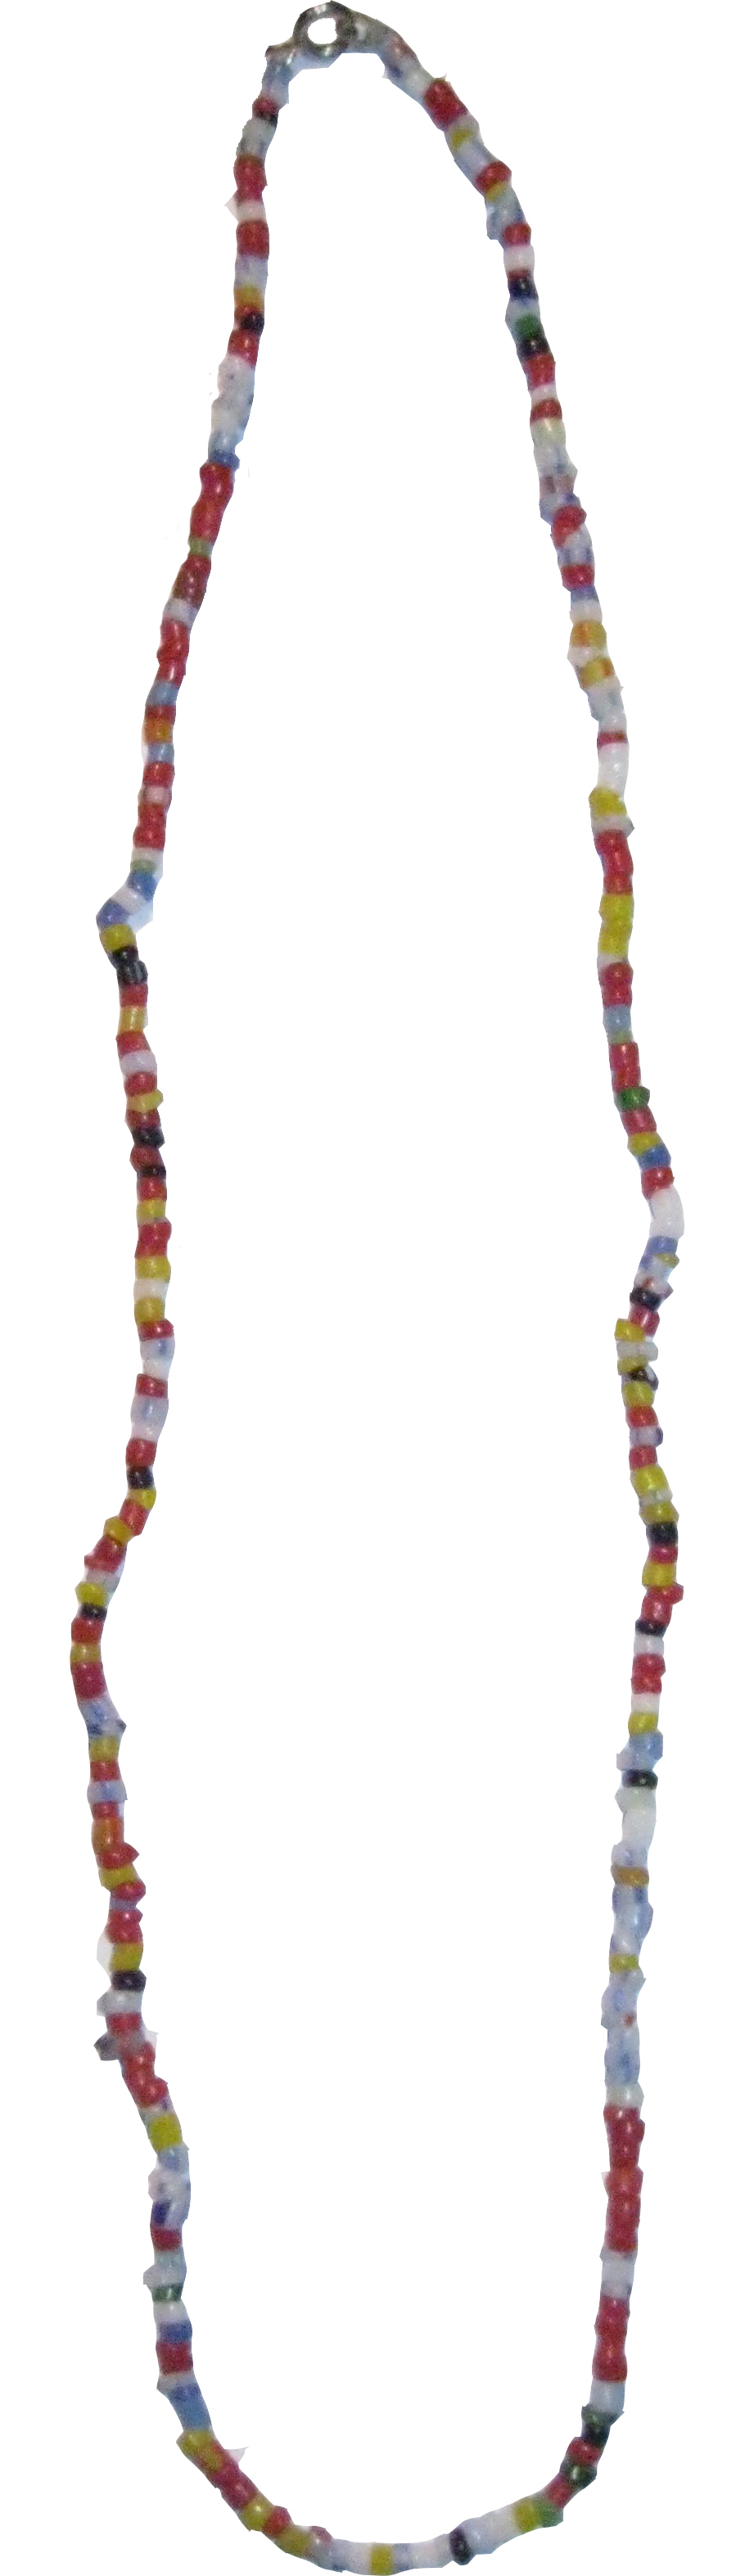 "Seed Bead Necklace 18"" CLOSEOUT SPECIAL"